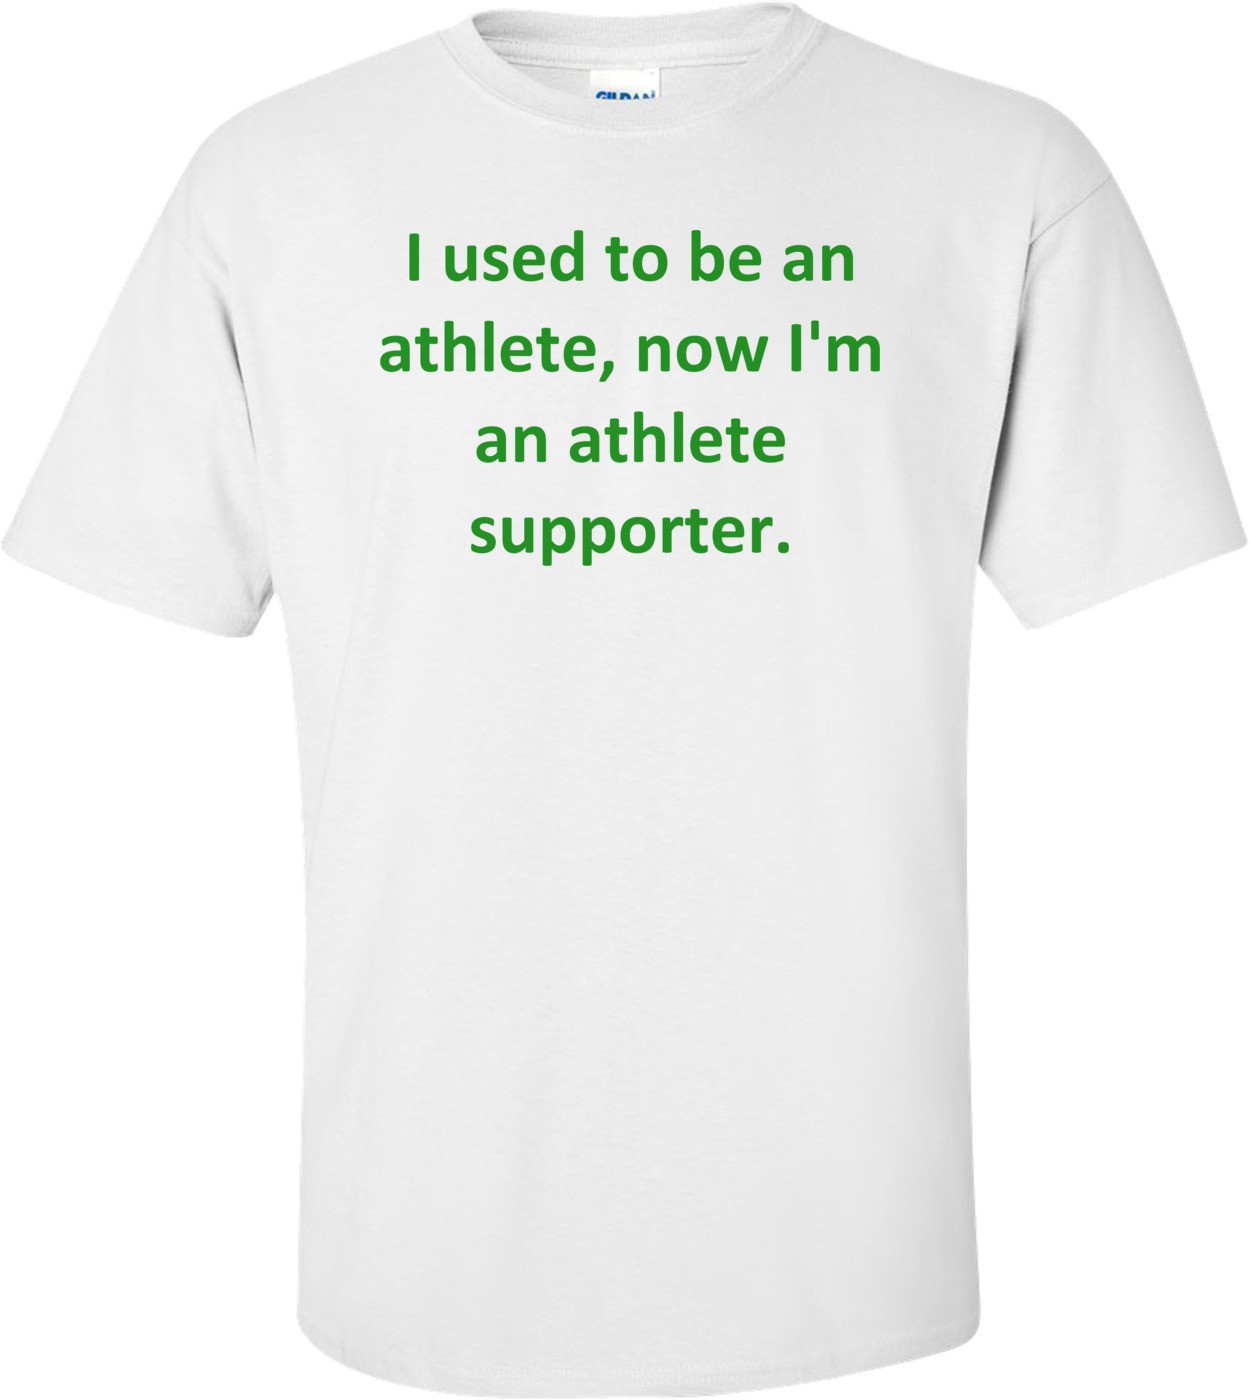 I used to be an athlete, now I'm an athlete supporter. Shirt